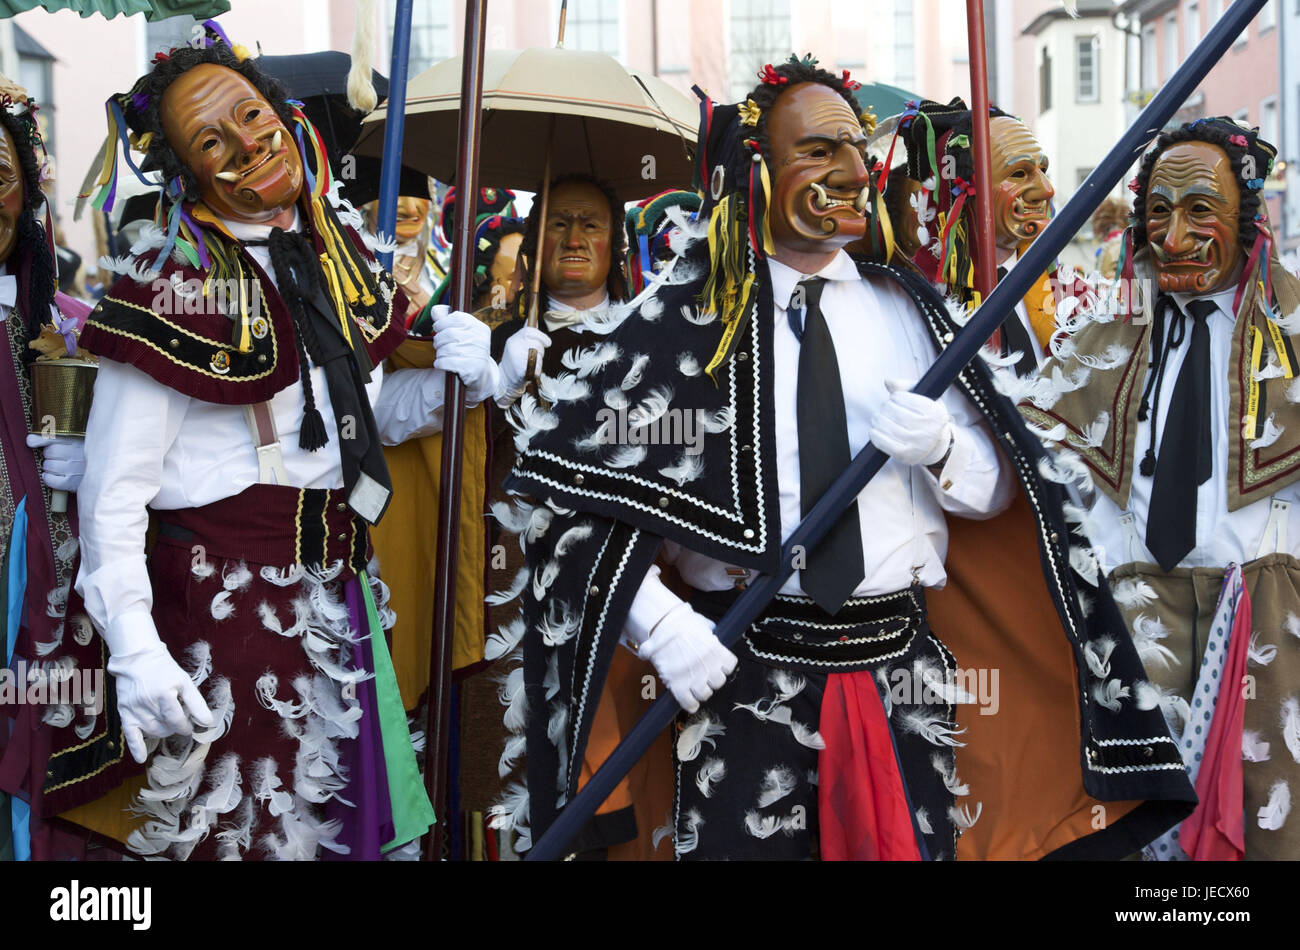 Germany, Baden-Wurttemberg, Rottweil, Rottweiler fool's guild, several Federahannes make nonsense, - Stock Image